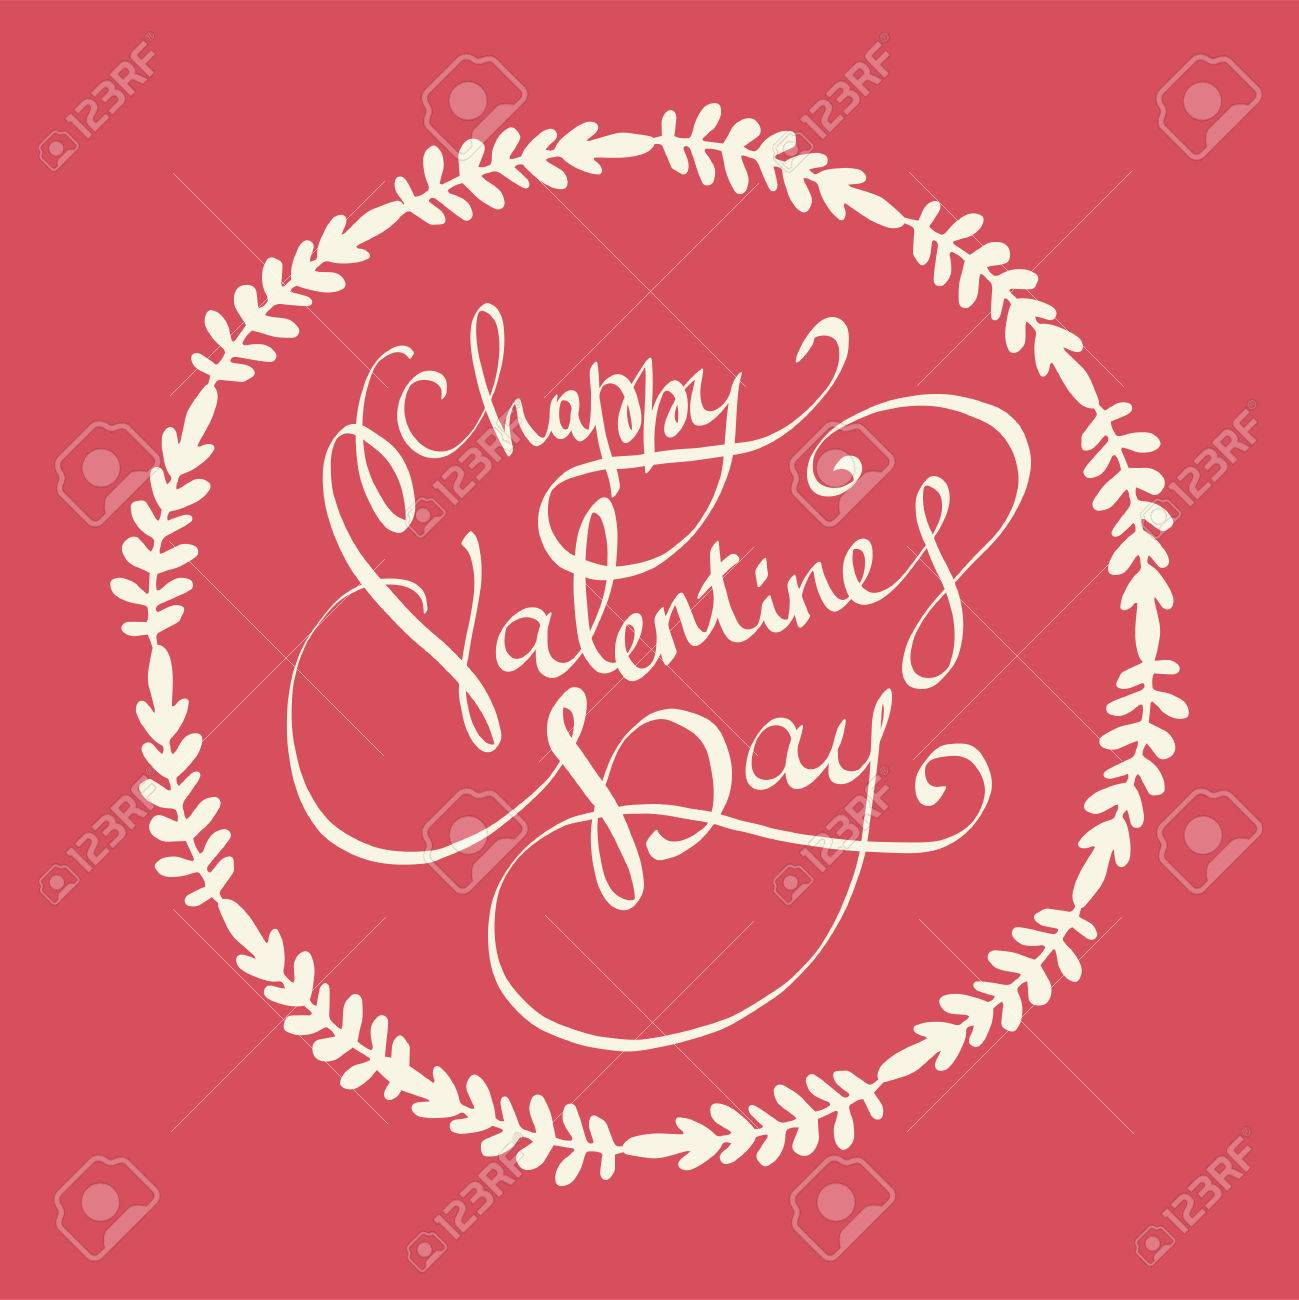 Happy Valentines Day Lettering Vector Background Valentine